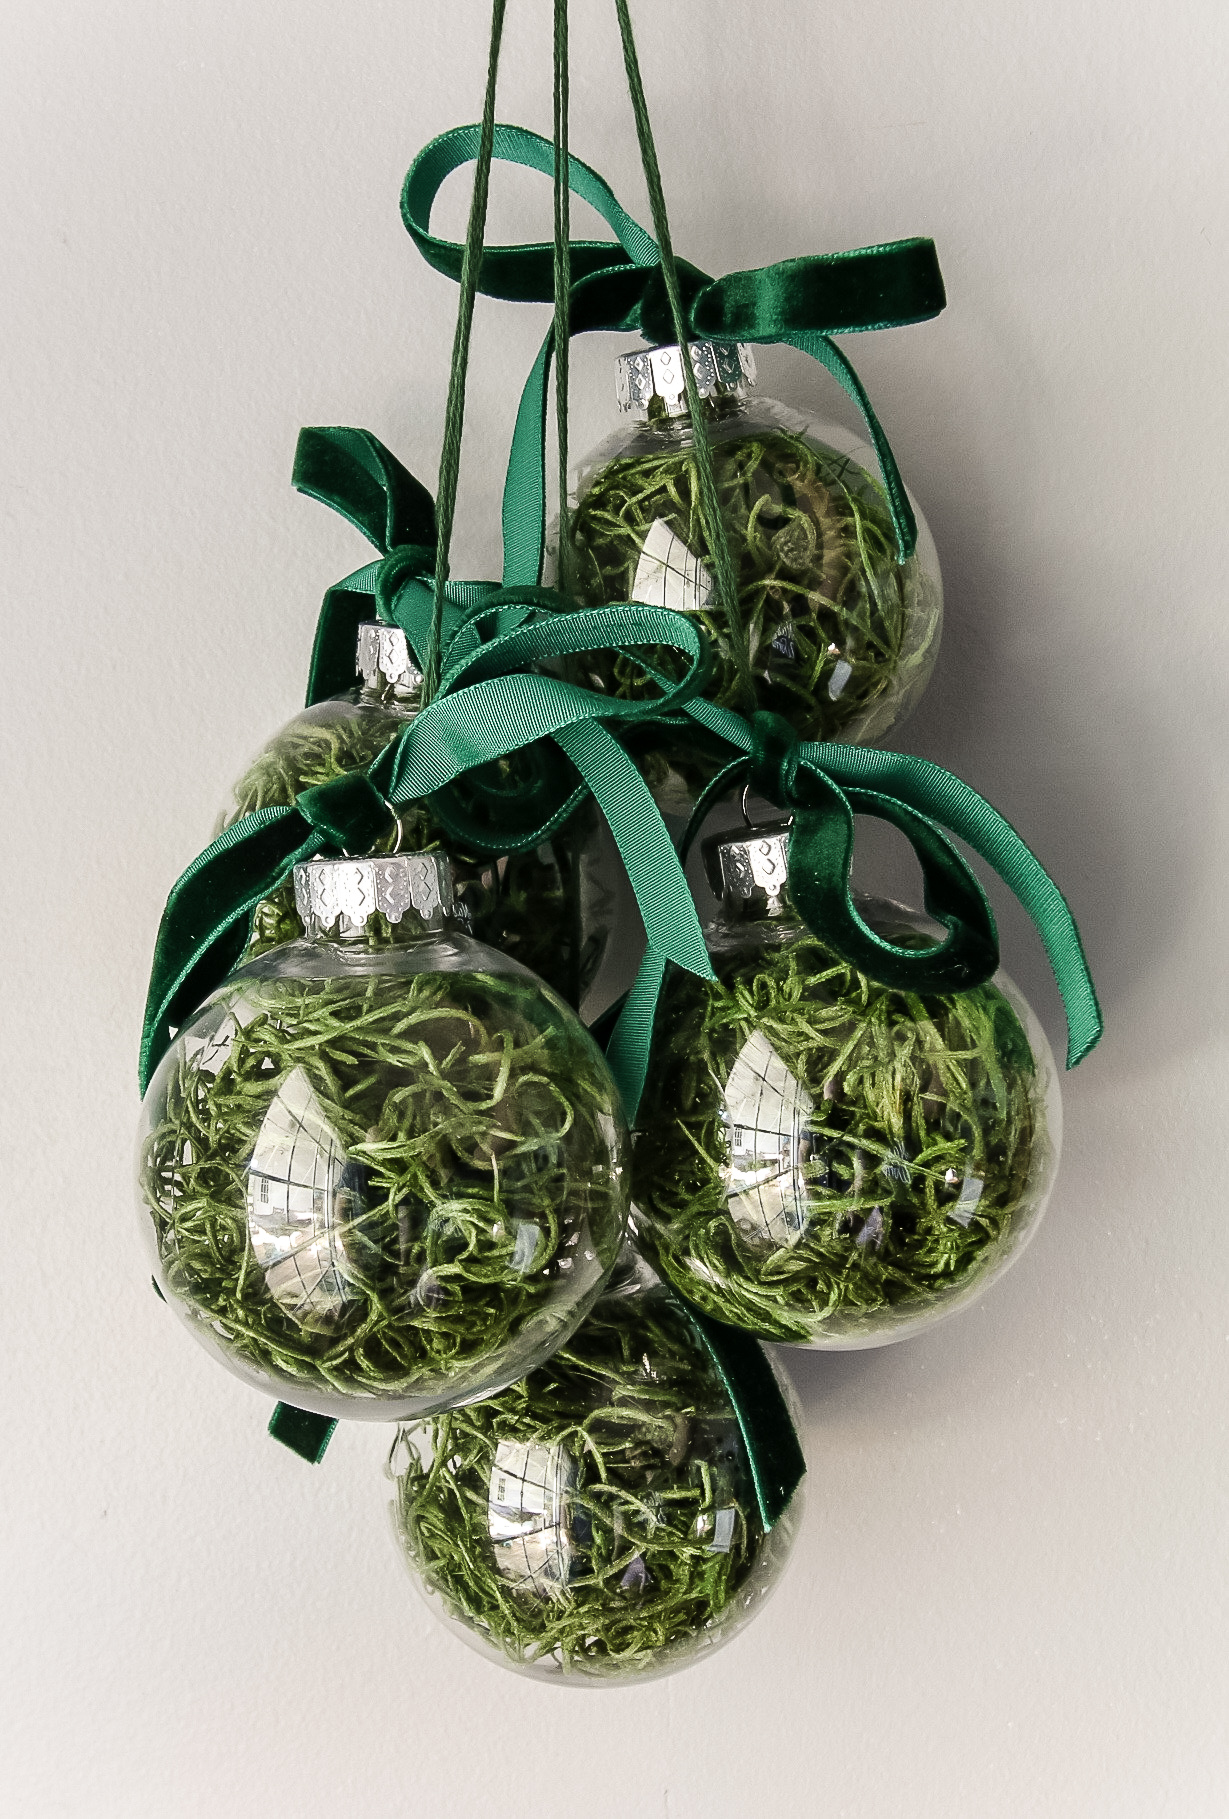 DIY moss ball Christmas ornaments